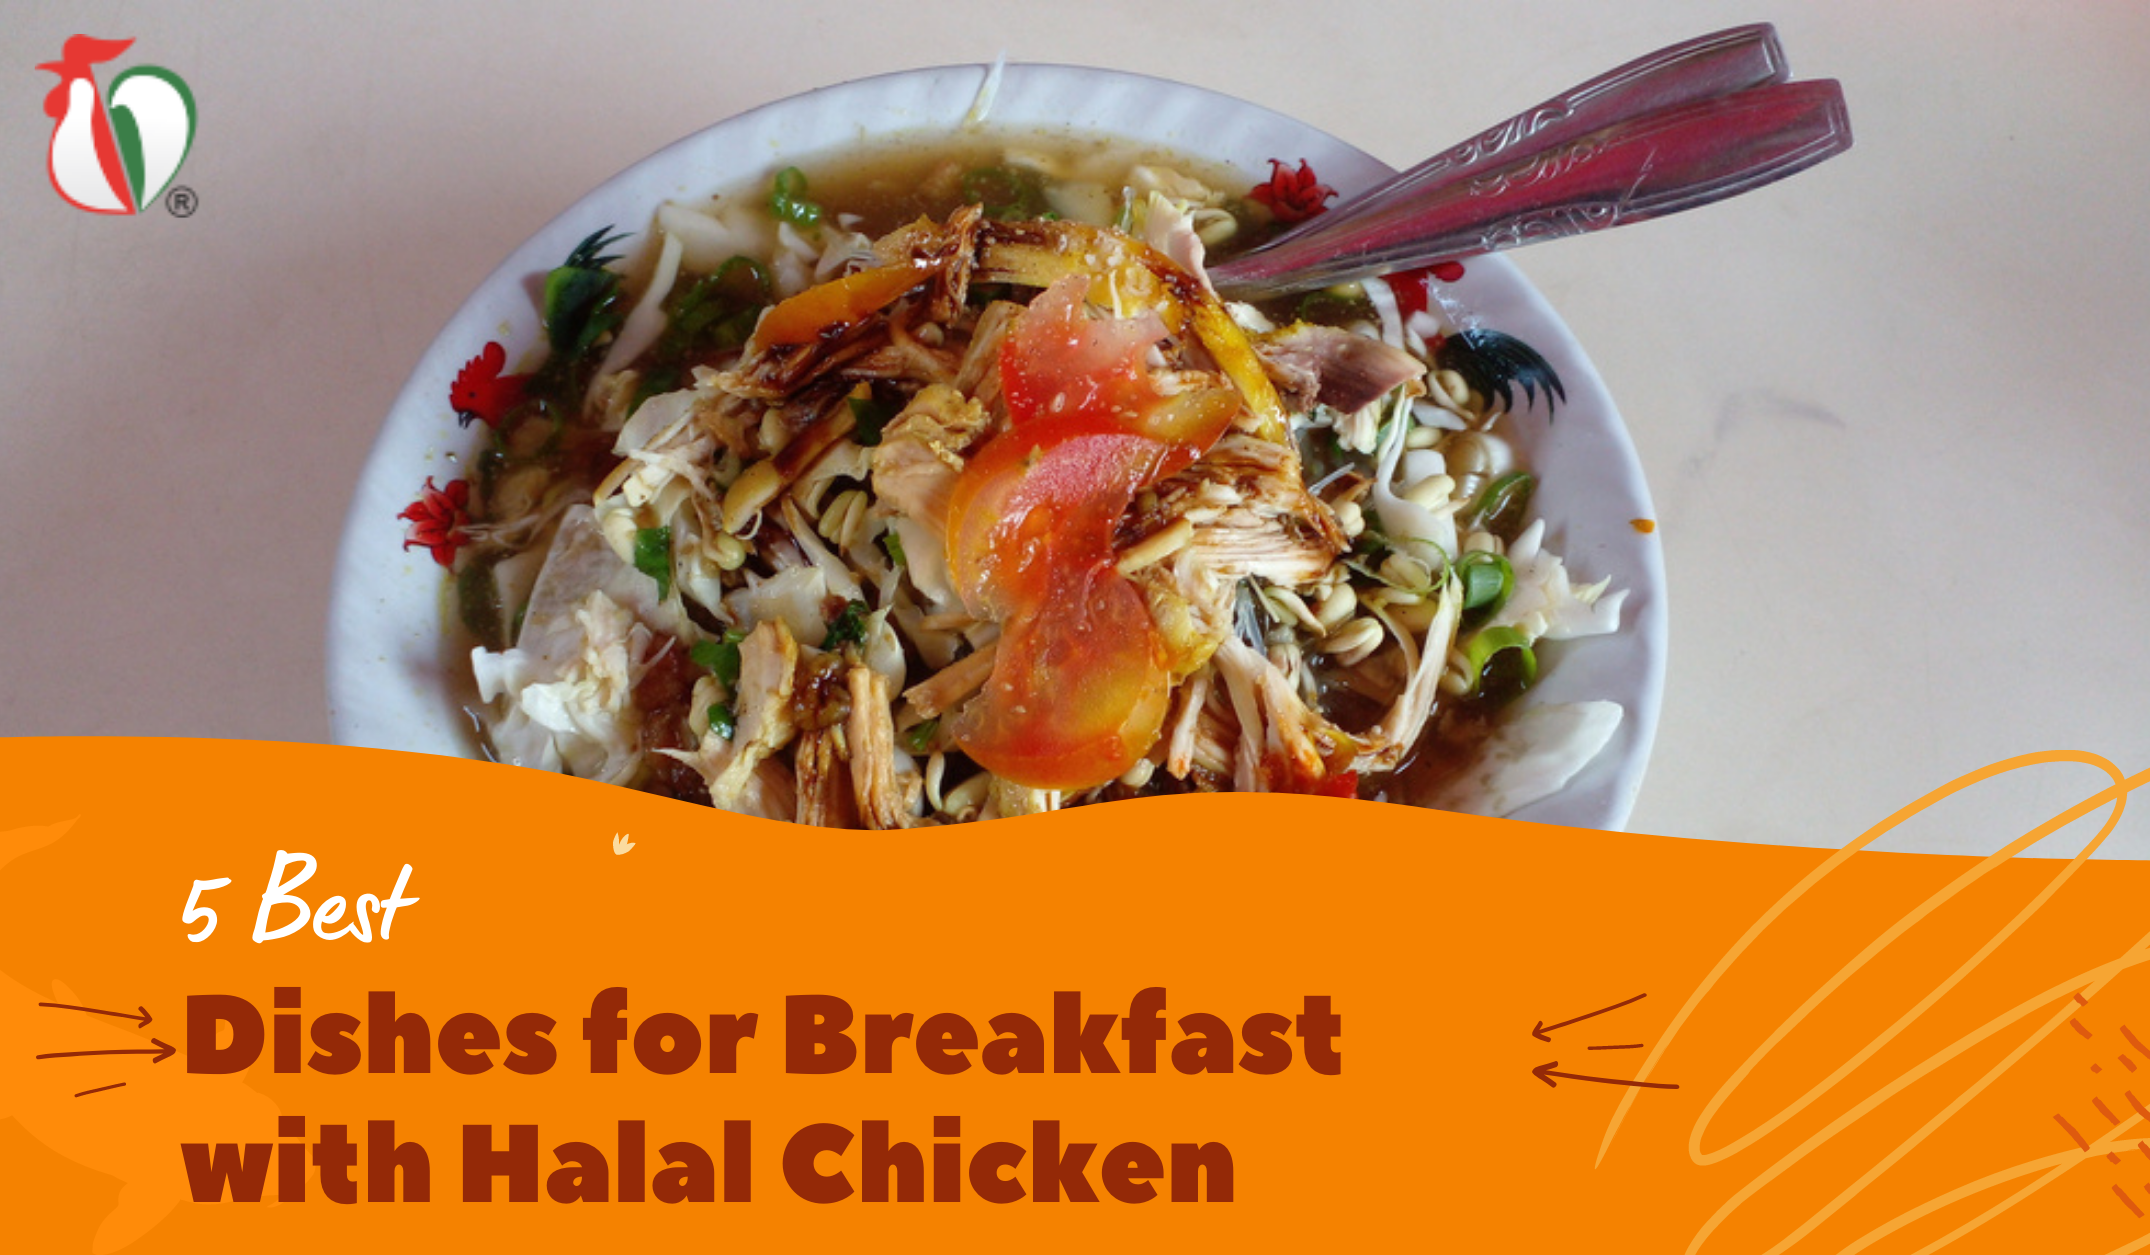 5 Best Dishes for Breakfast with Halal Chicken